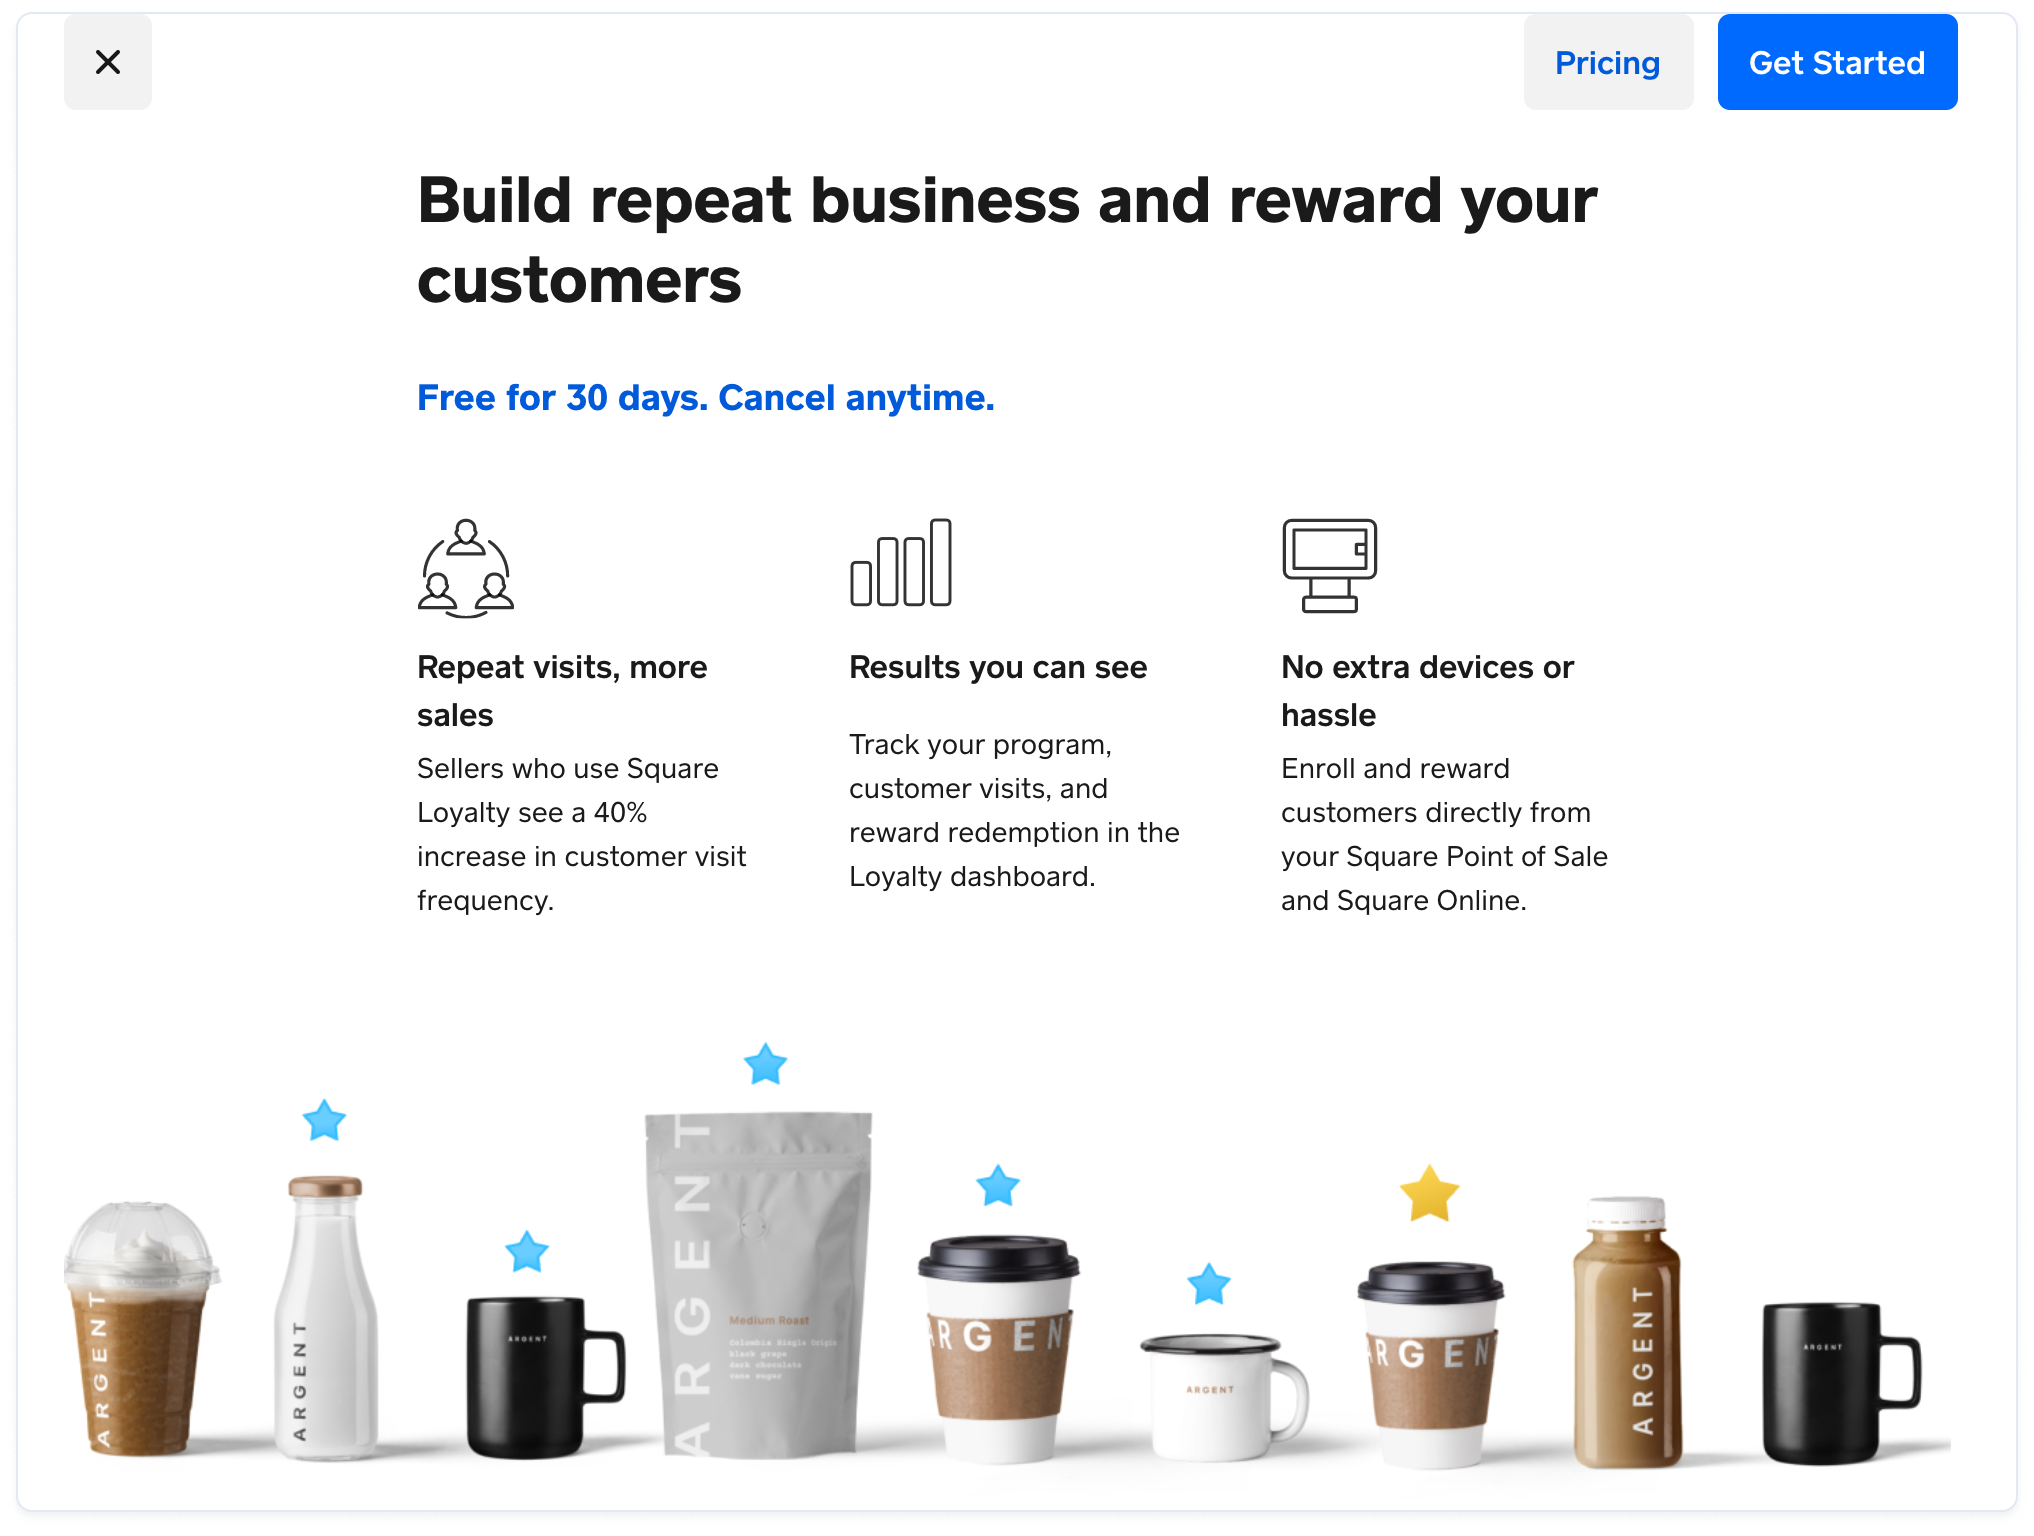 loyalty_get_started_page